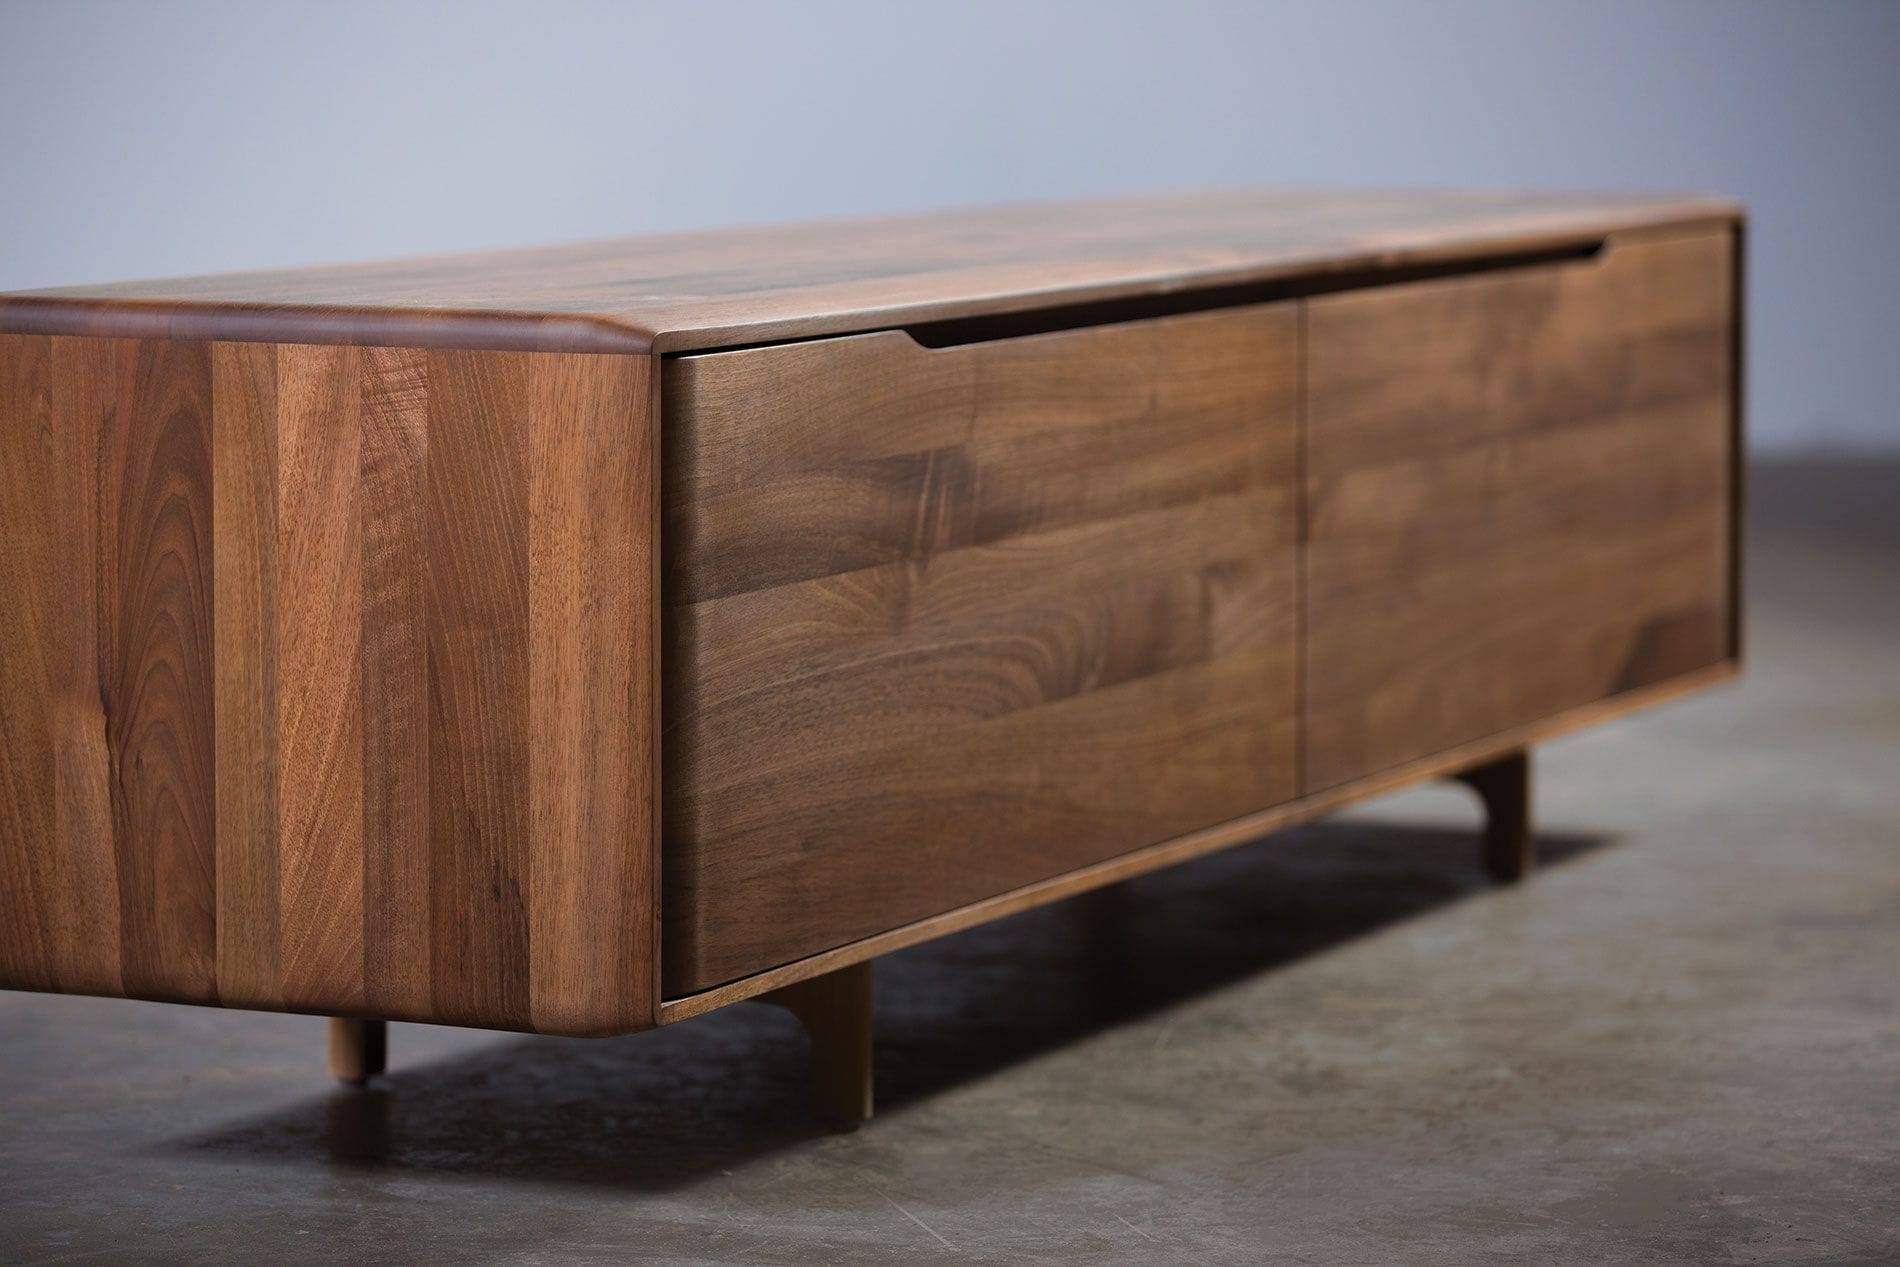 Contemporary Sideboard / Oak / Walnut / Solid Wood - Invito with regard to Contemporary Sideboards (Image 4 of 30)